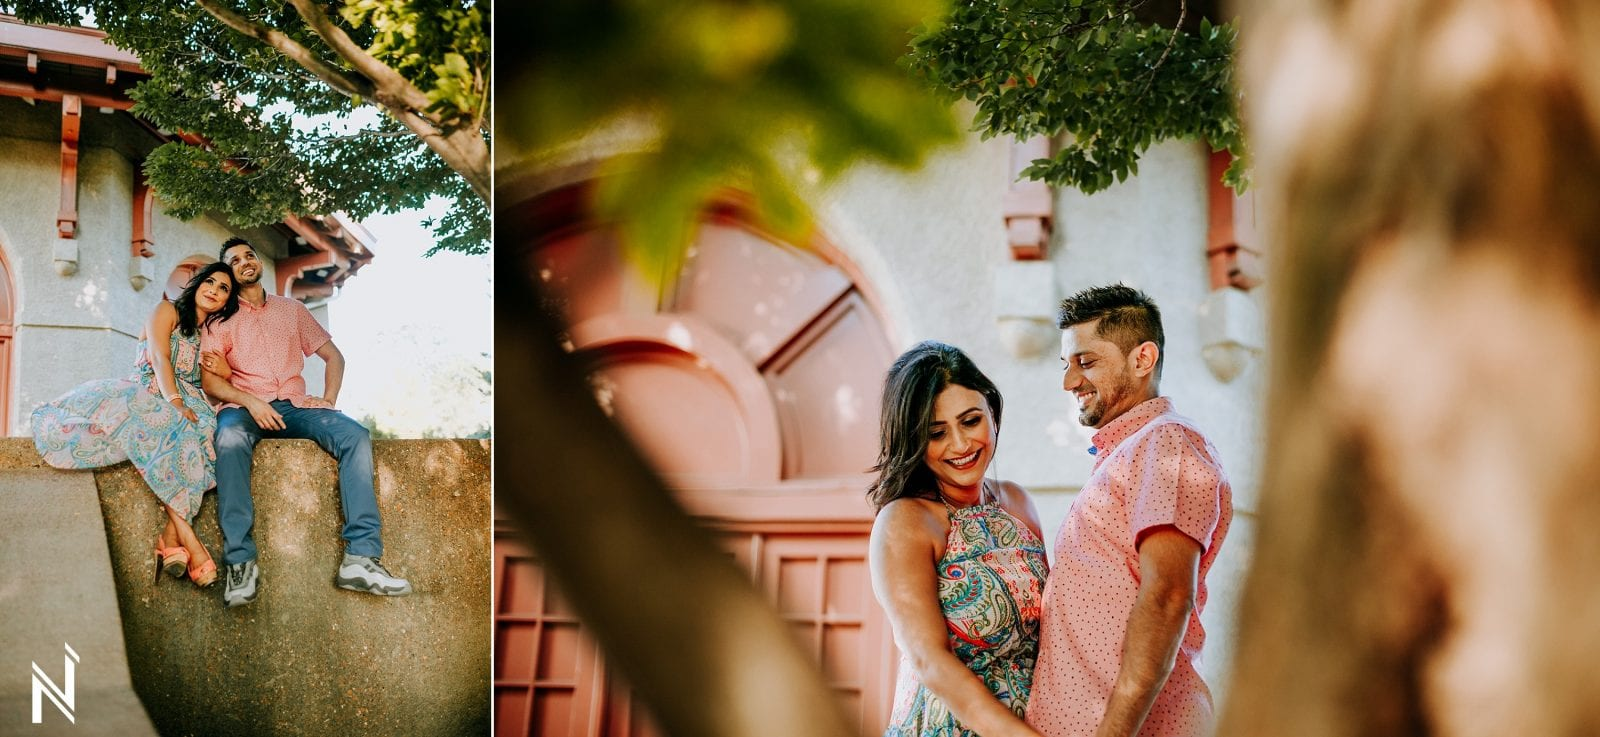 Indian engagement photography at Worlds Fair Pavillon in Forest Park